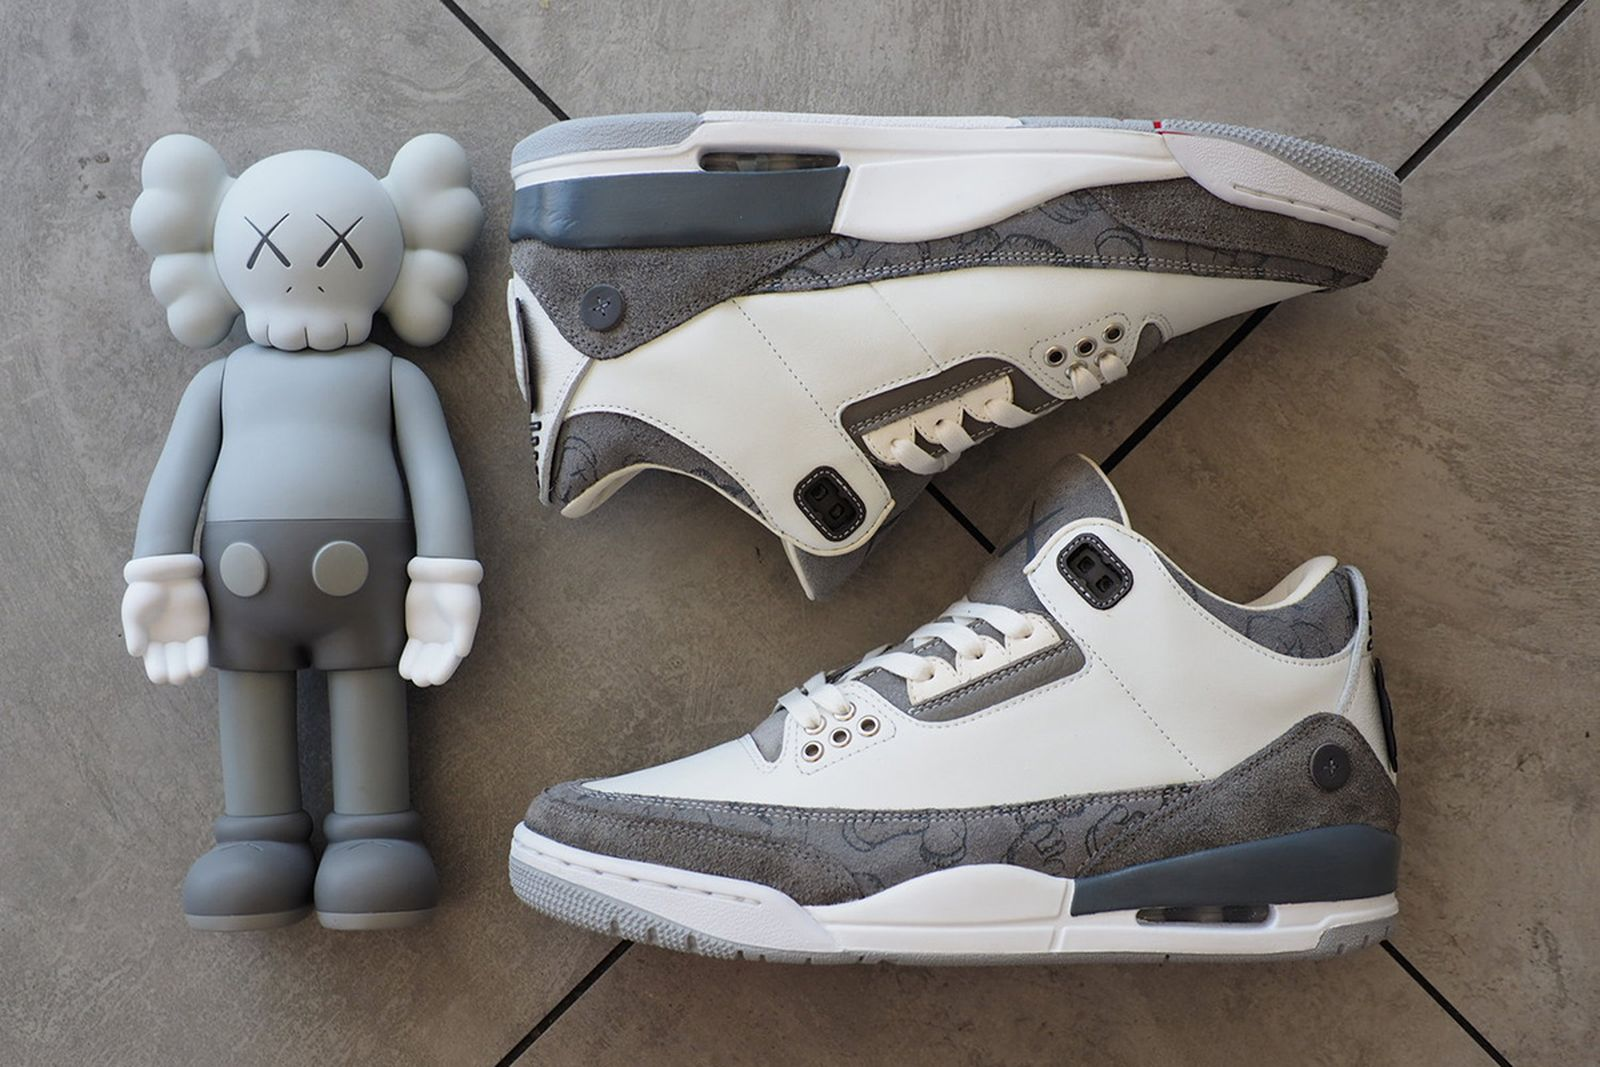 tonto audición montar  This Is What a KAWS x Nike Air Jordan 3 Could Look Like